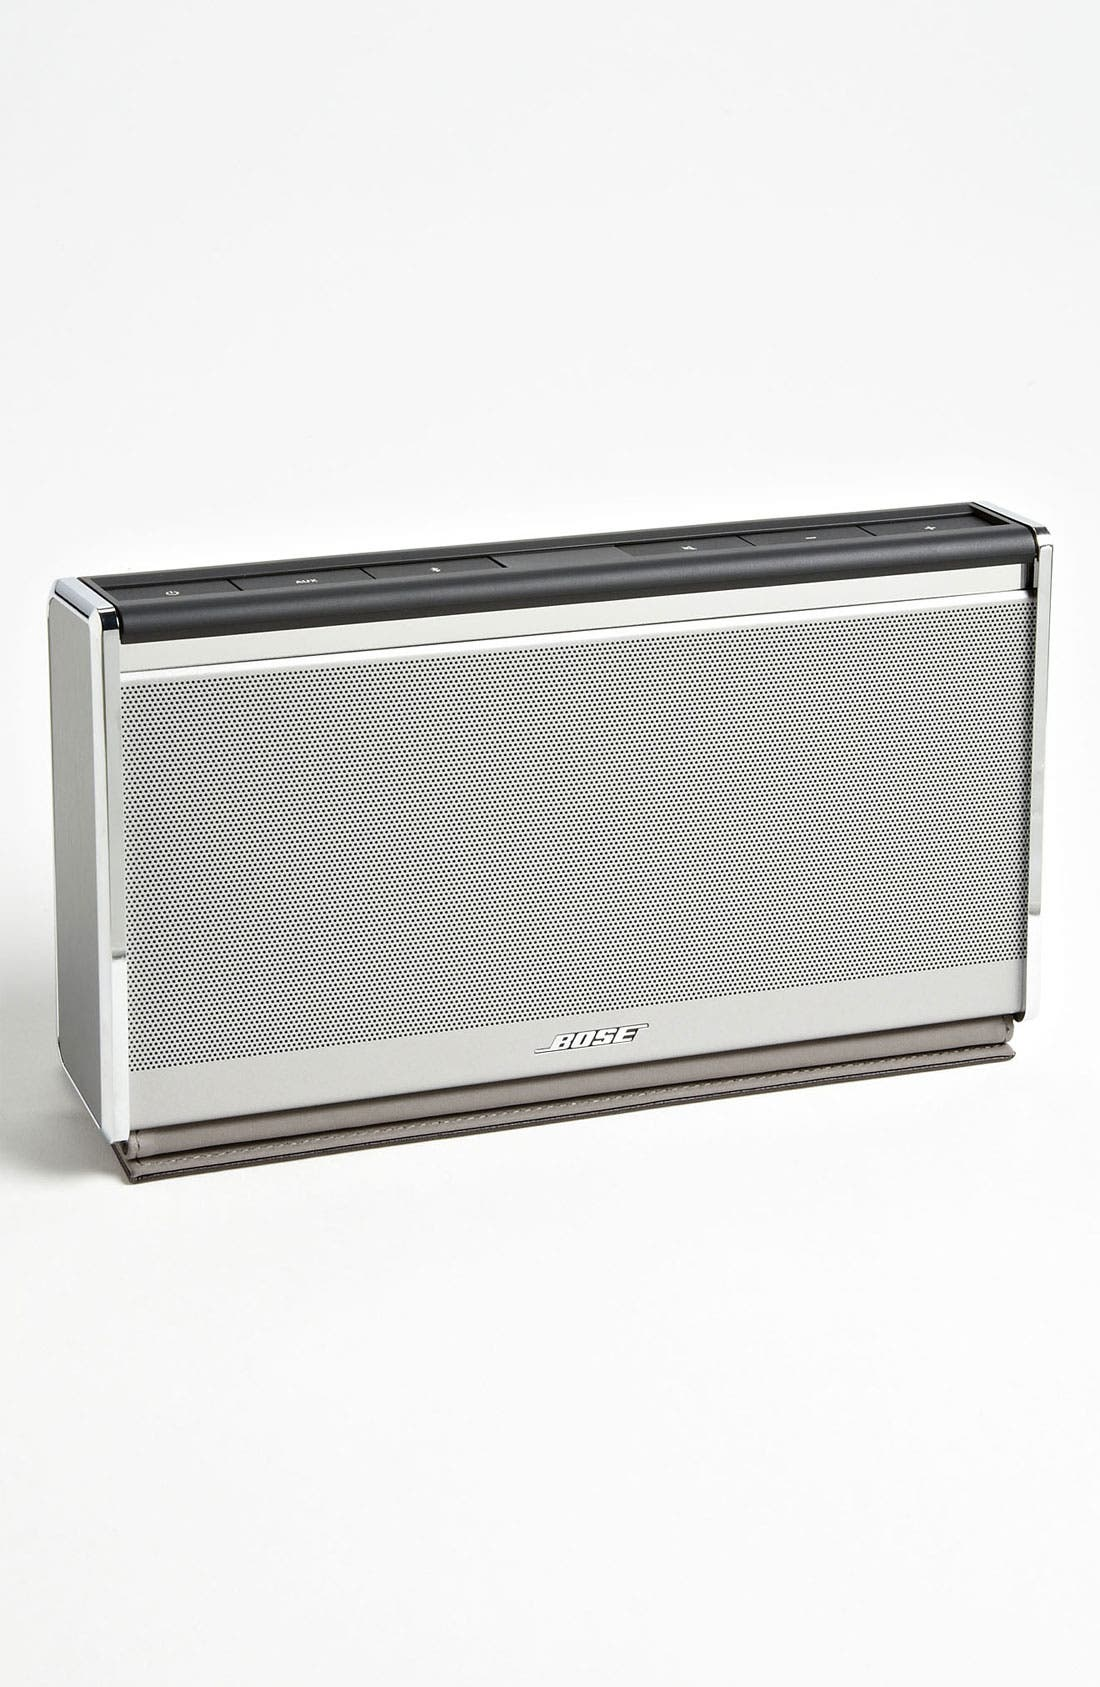 Alternate Image 1 Selected - Bose® SoundLink® Bluetooth® Mobile Speaker II – Leather Edition